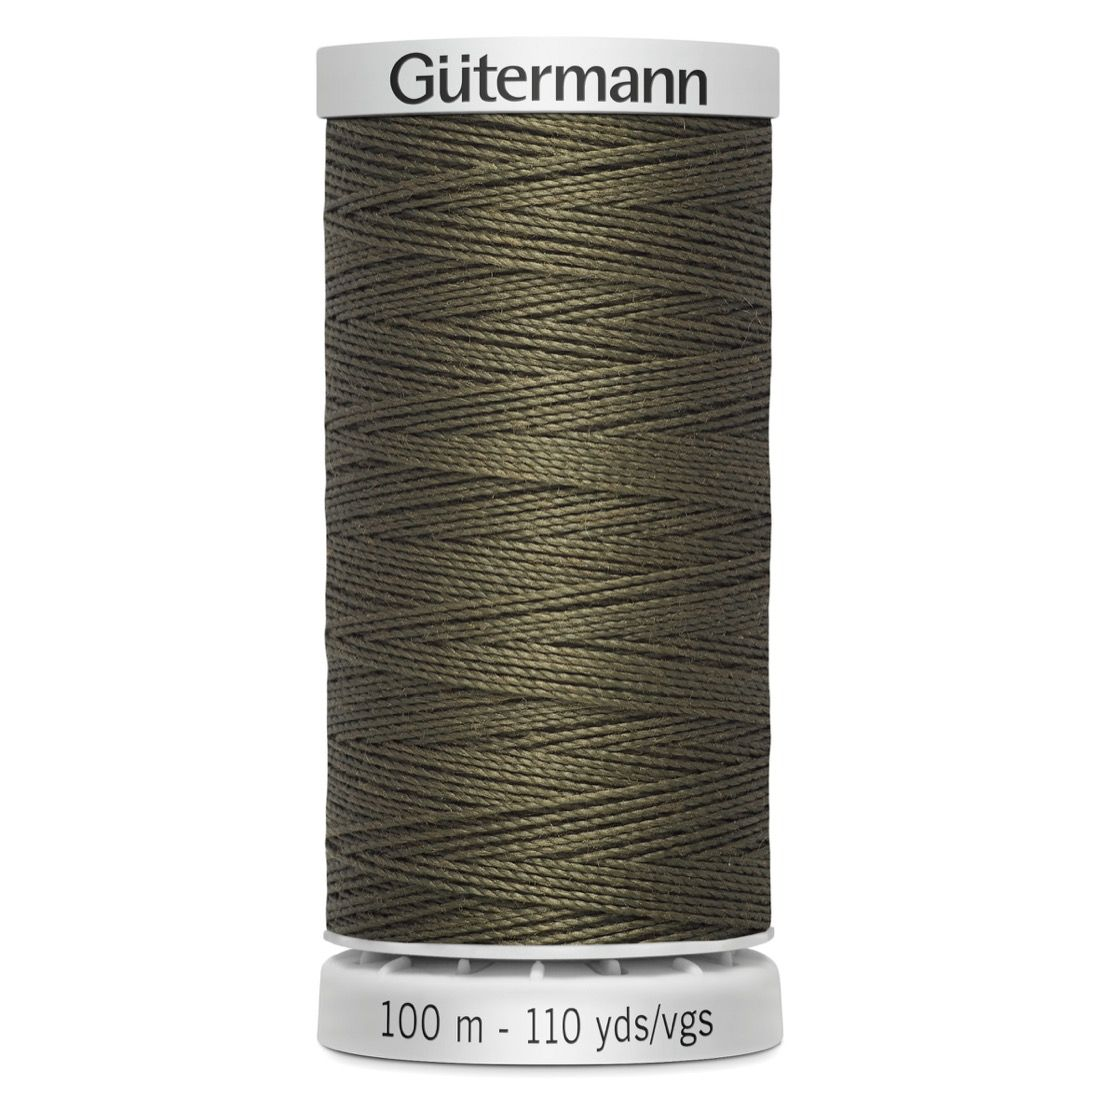 Gutermann Extra Strong Upholstery Thread - 100m - 676